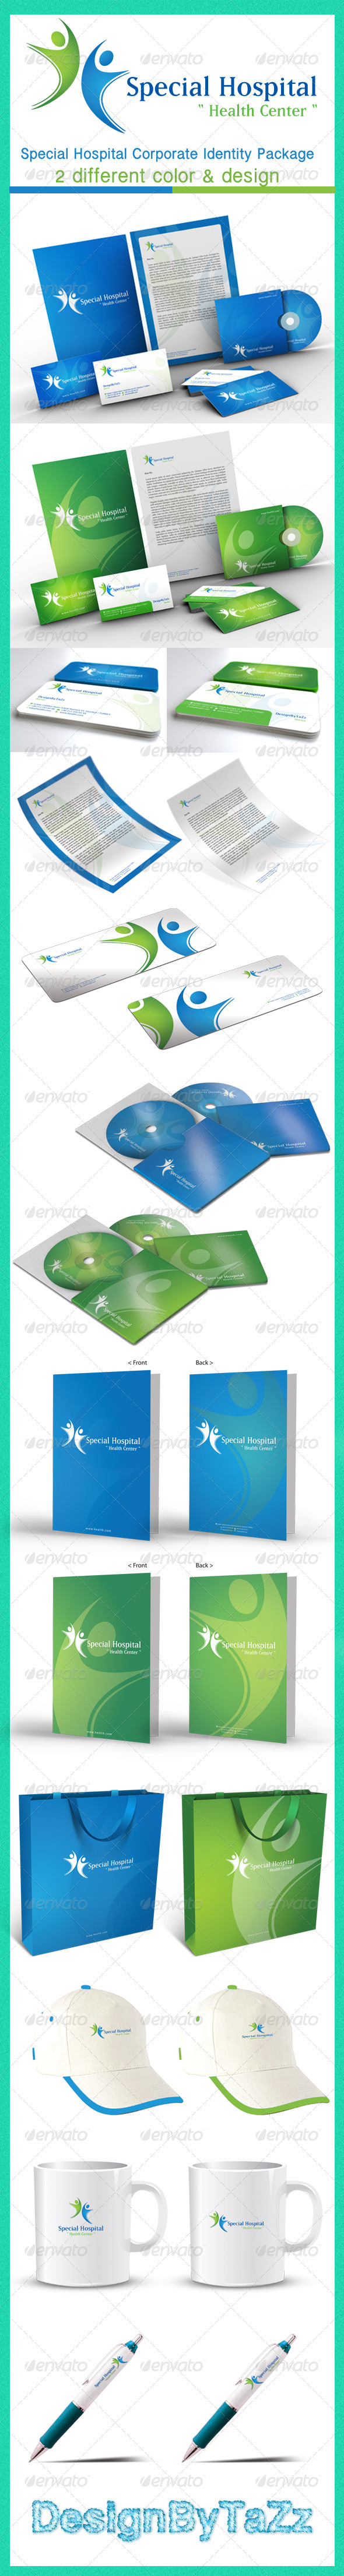 Special Hospital Corporate Identity Package - Stationery Print Templates